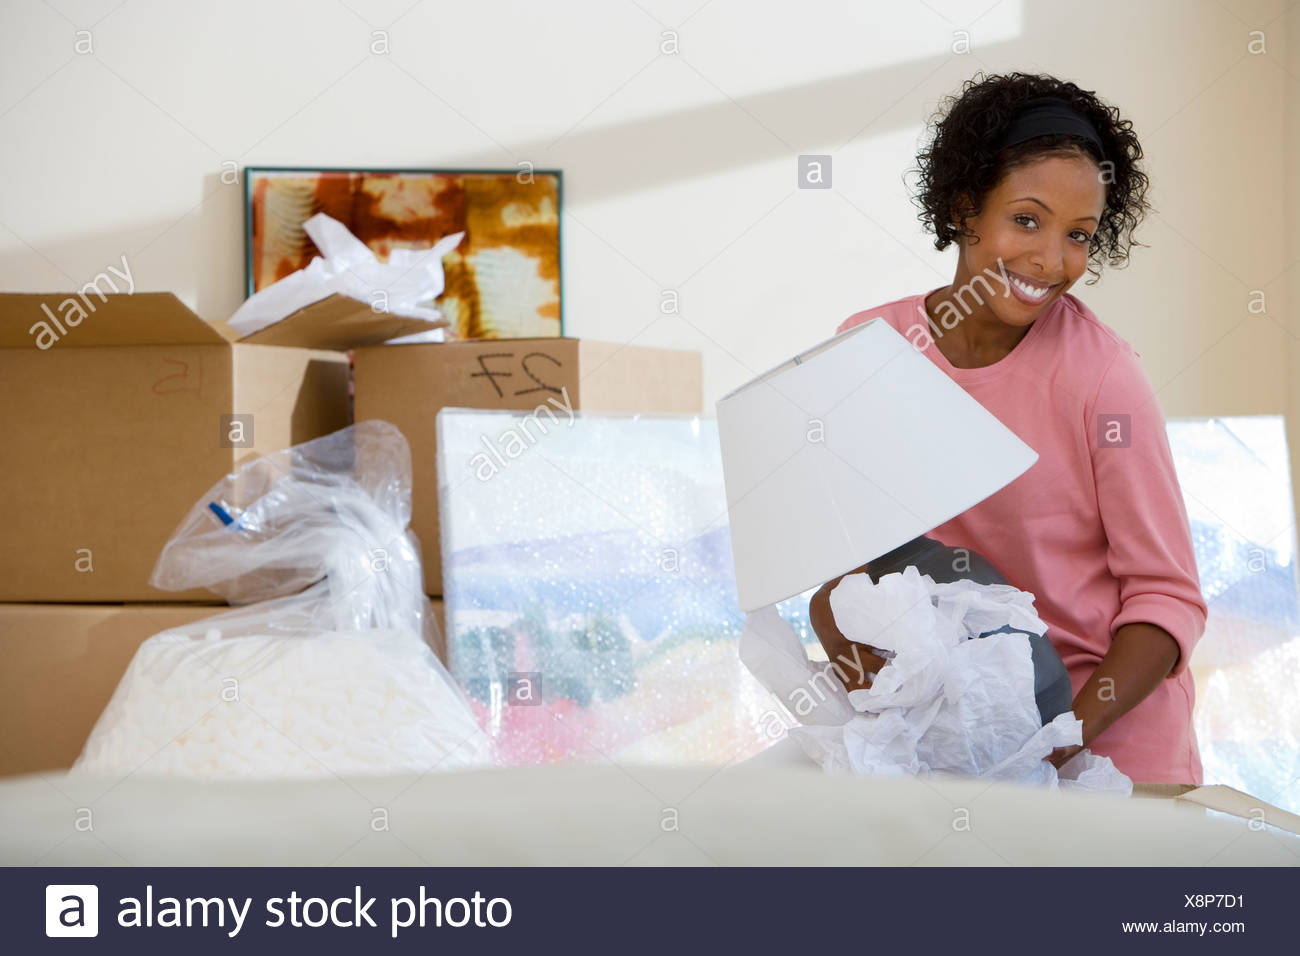 Woman moving house unpacking lamp from cardboard box in living room smiling portrait - Stock Image